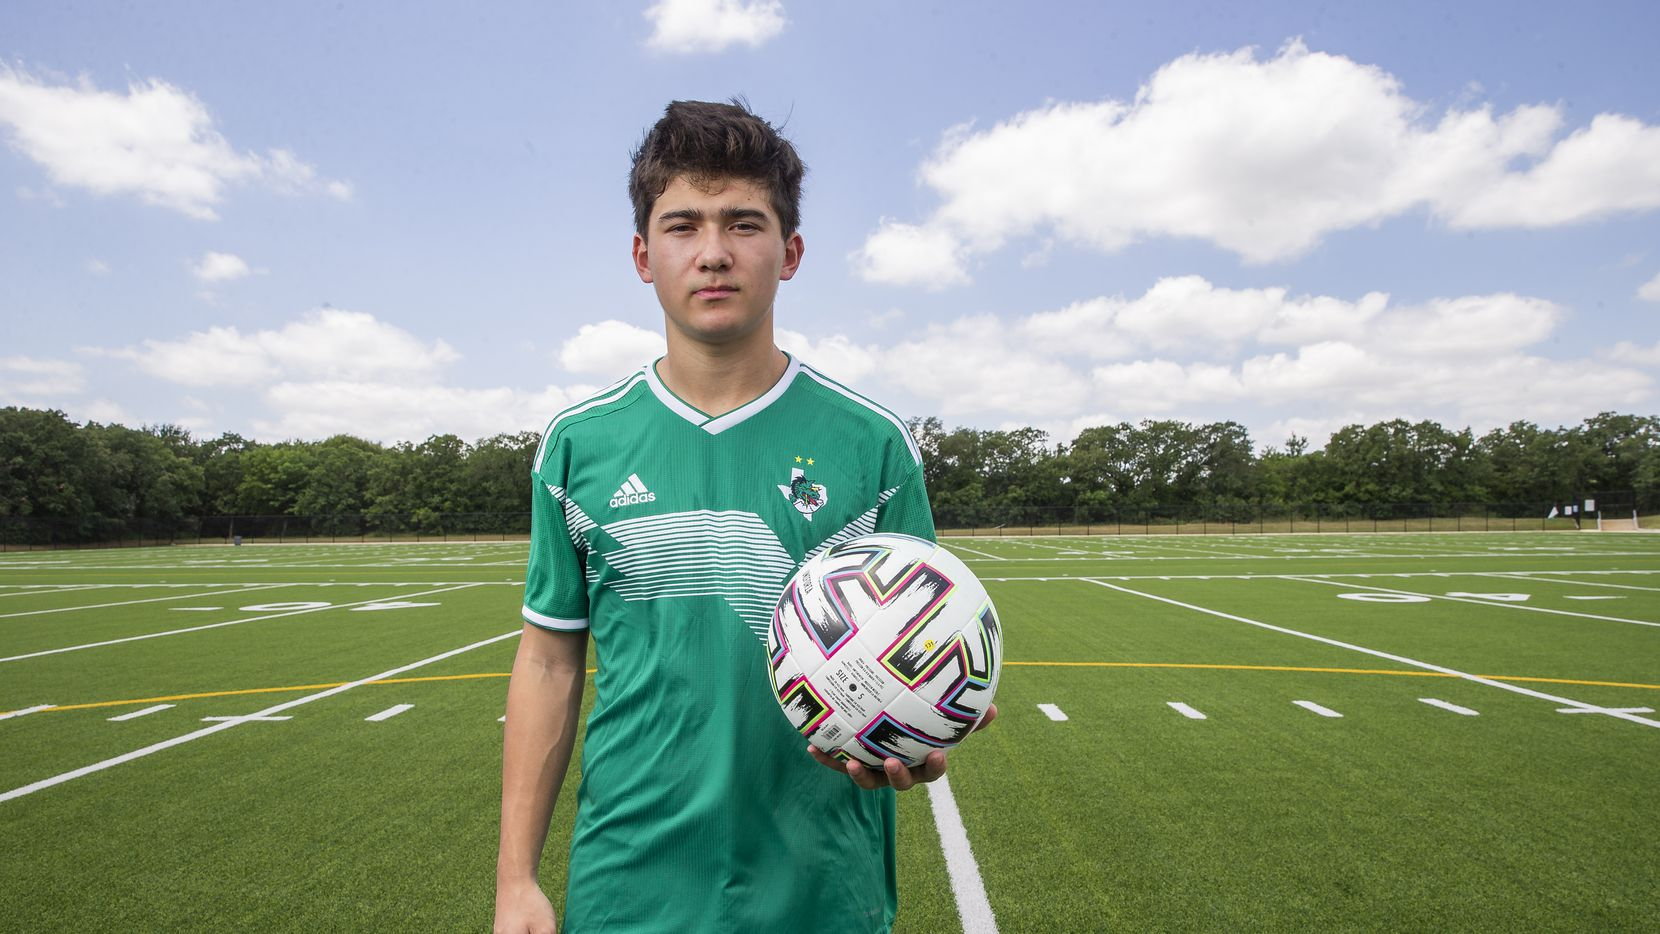 Southlake Carroll senior F/MF Robbie Pino, the 2020 all-area player of the year, poses for a photo on May 14, 2020 in Southlake.